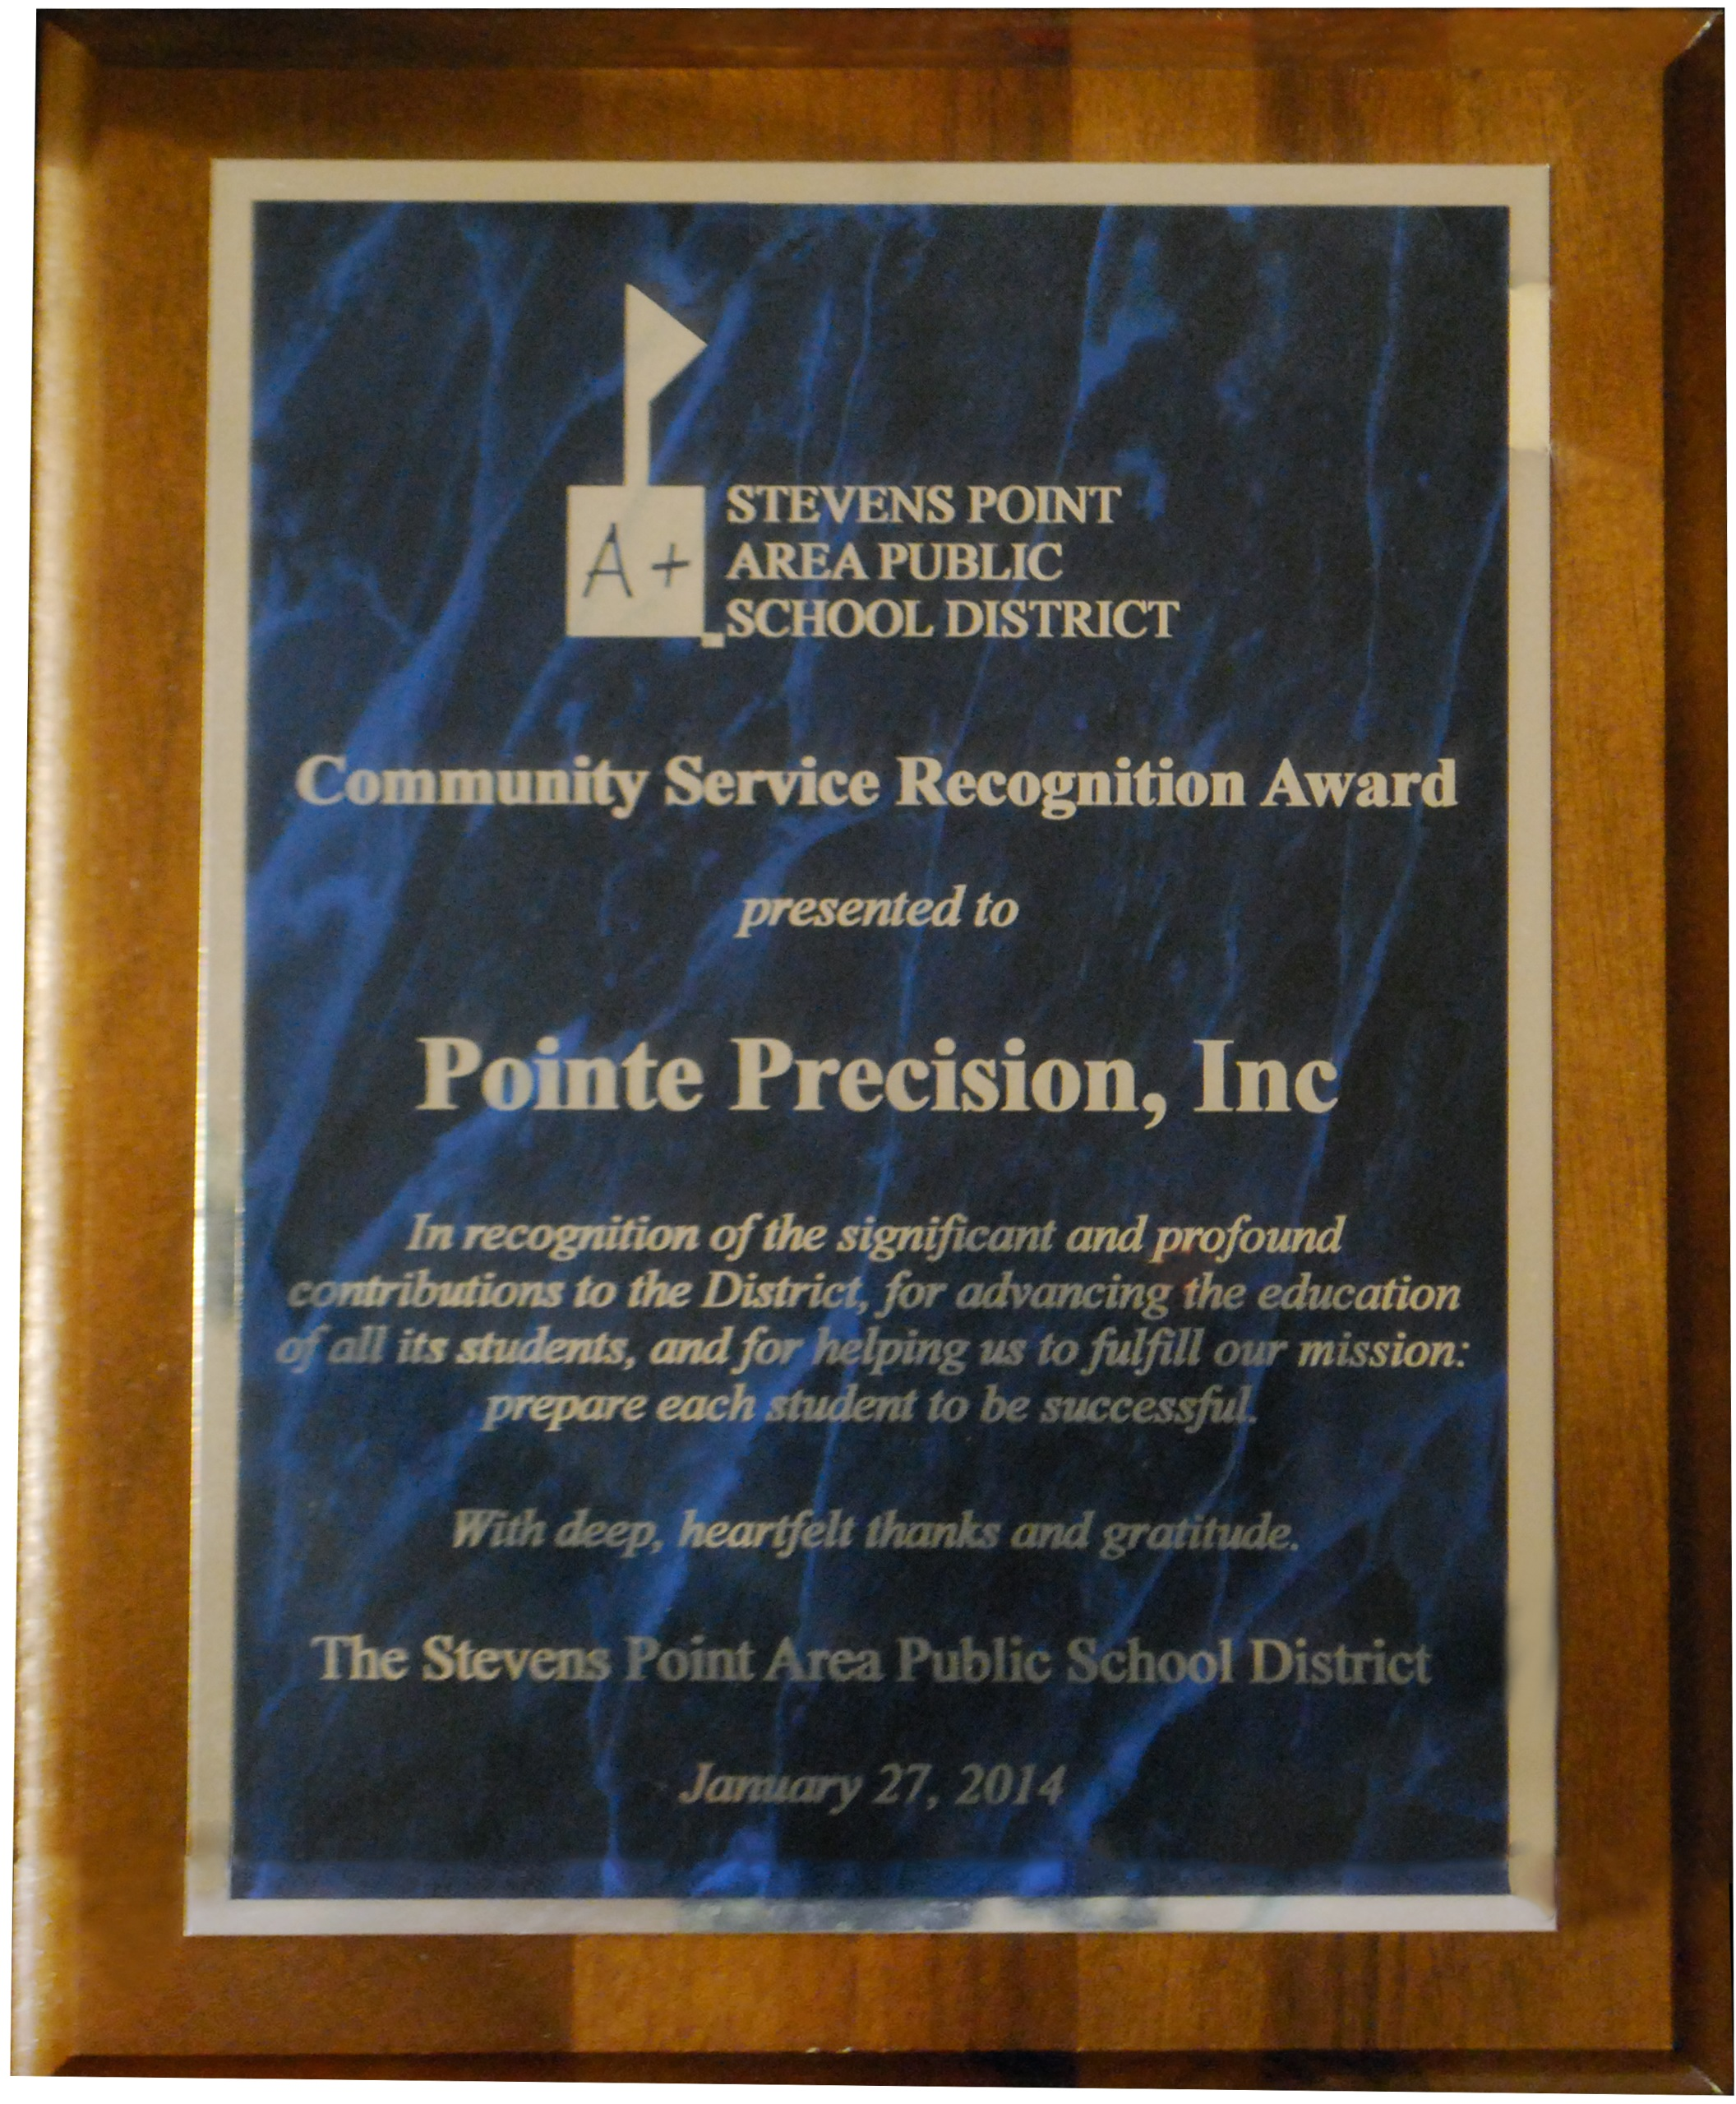 community_service_recognition_2015.jpg